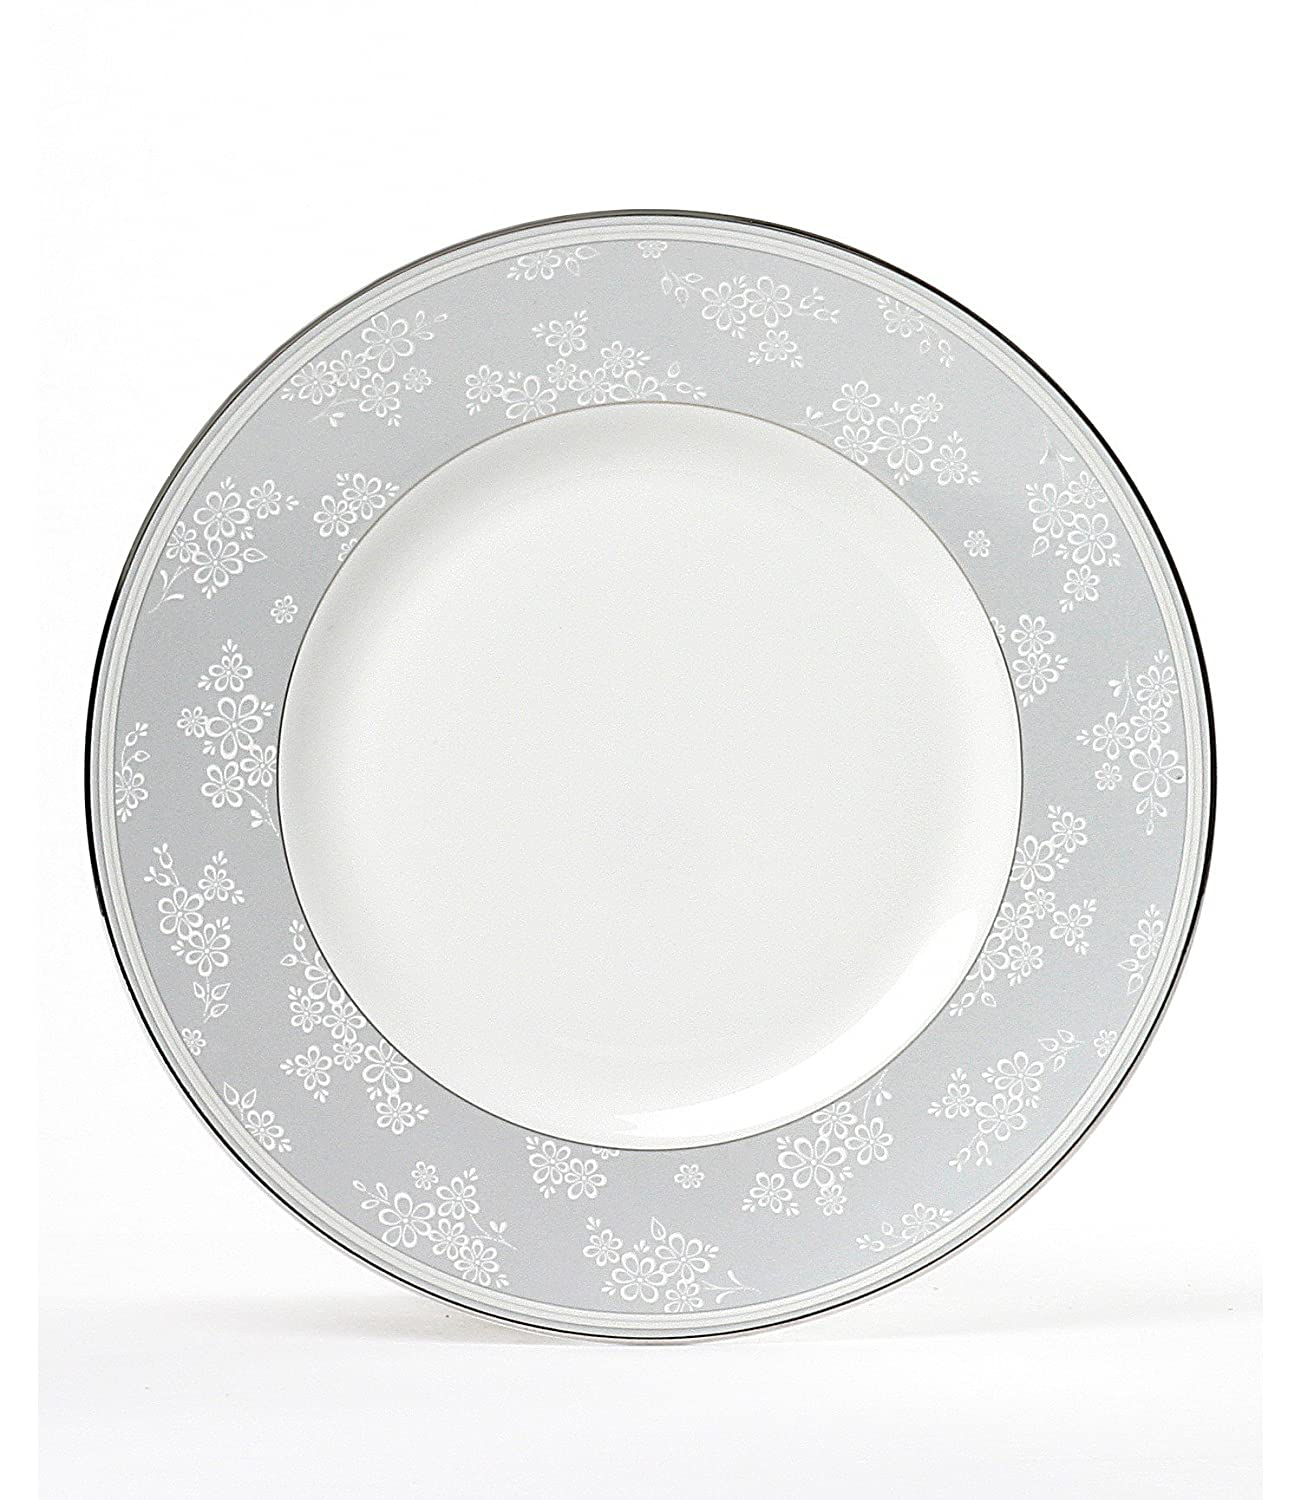 Wedgwood Notting Hill Accent Salad Plate Wedgwood China 137162